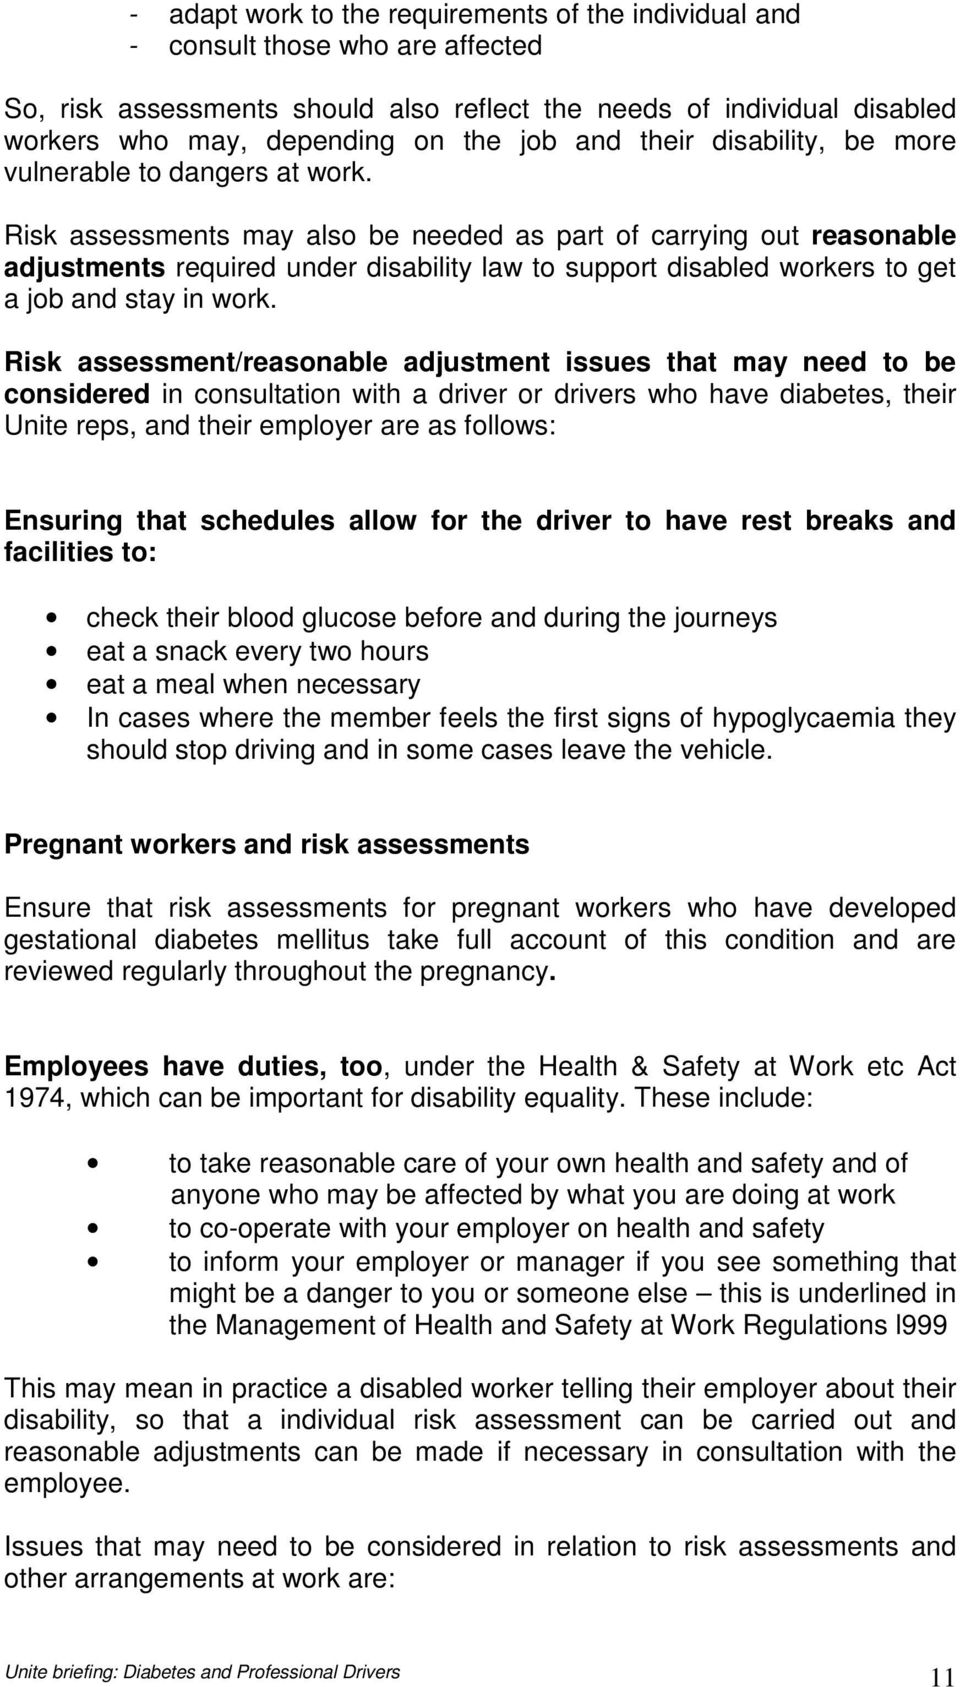 Risk assessments may also be needed as part of carrying out reasonable adjustments required under disability law to support disabled workers to get a job and stay in work.